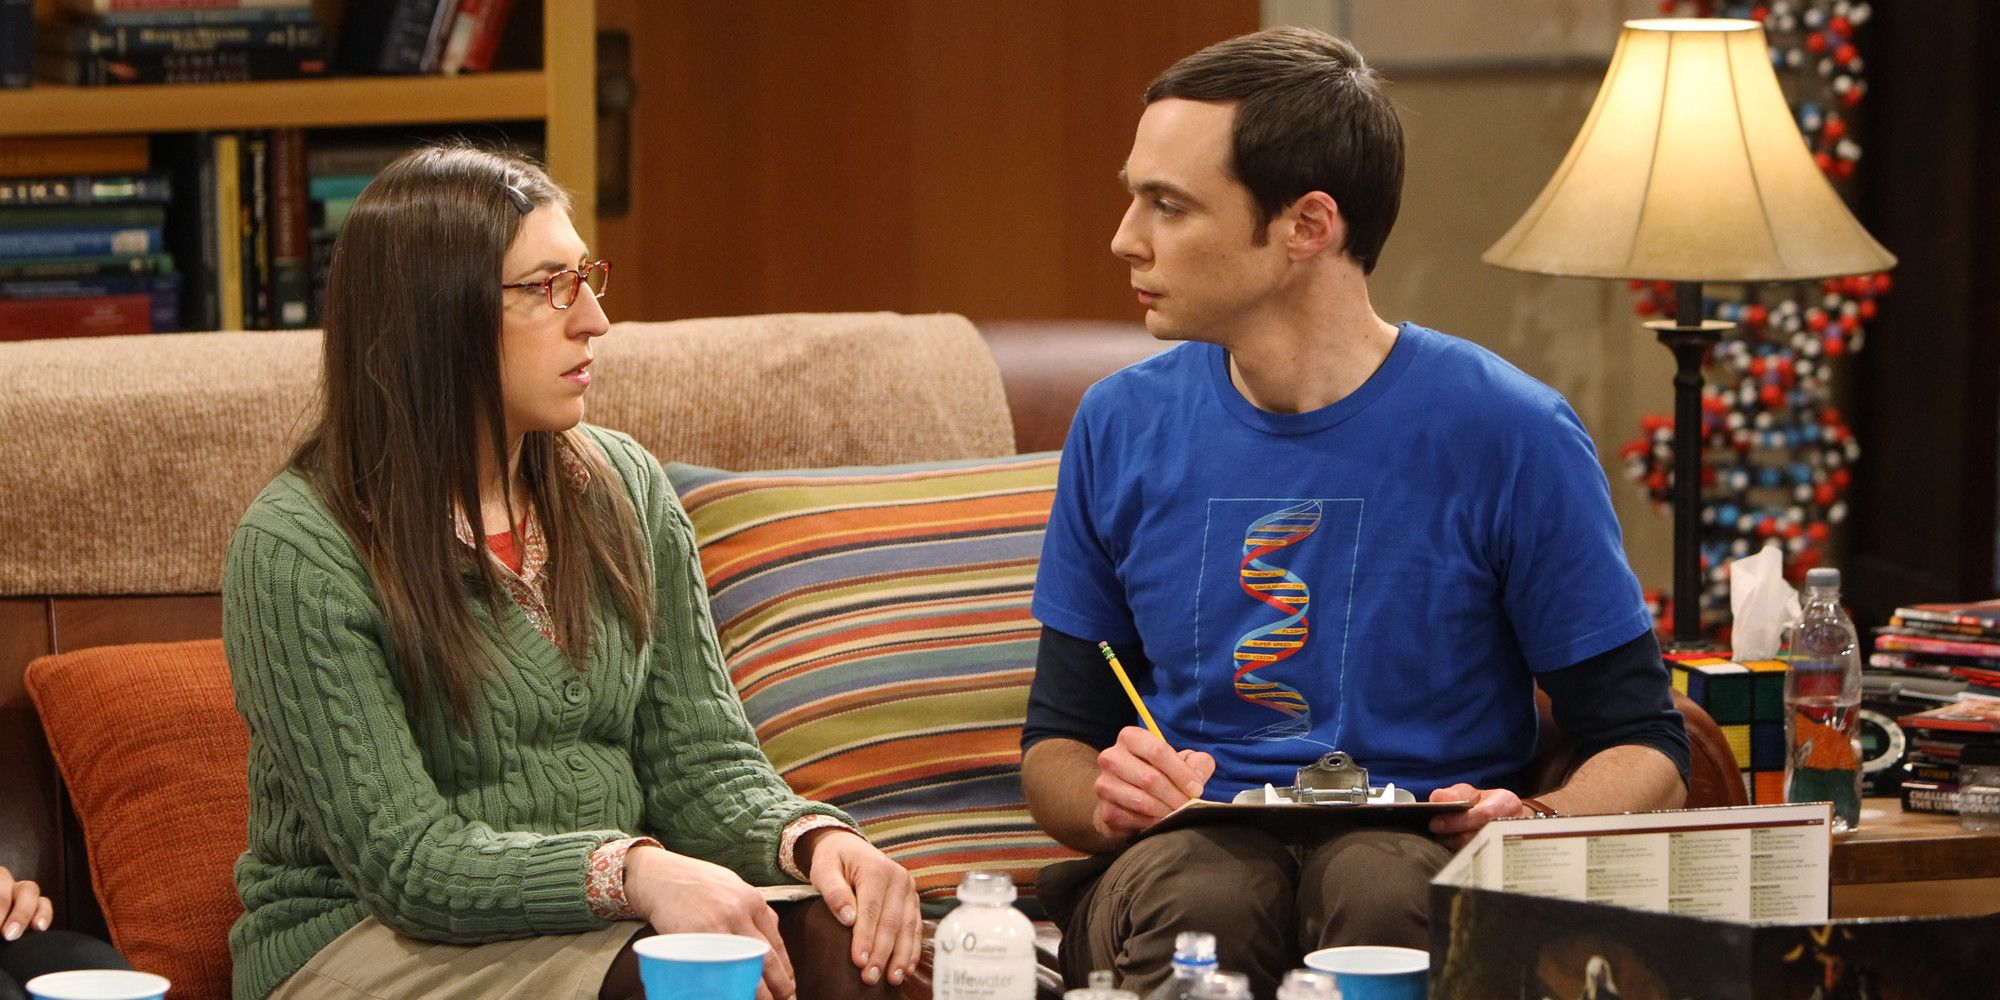 Big Bang Theory: Sheldon & Amy Go After a Nobel Prize - But Will It Work?